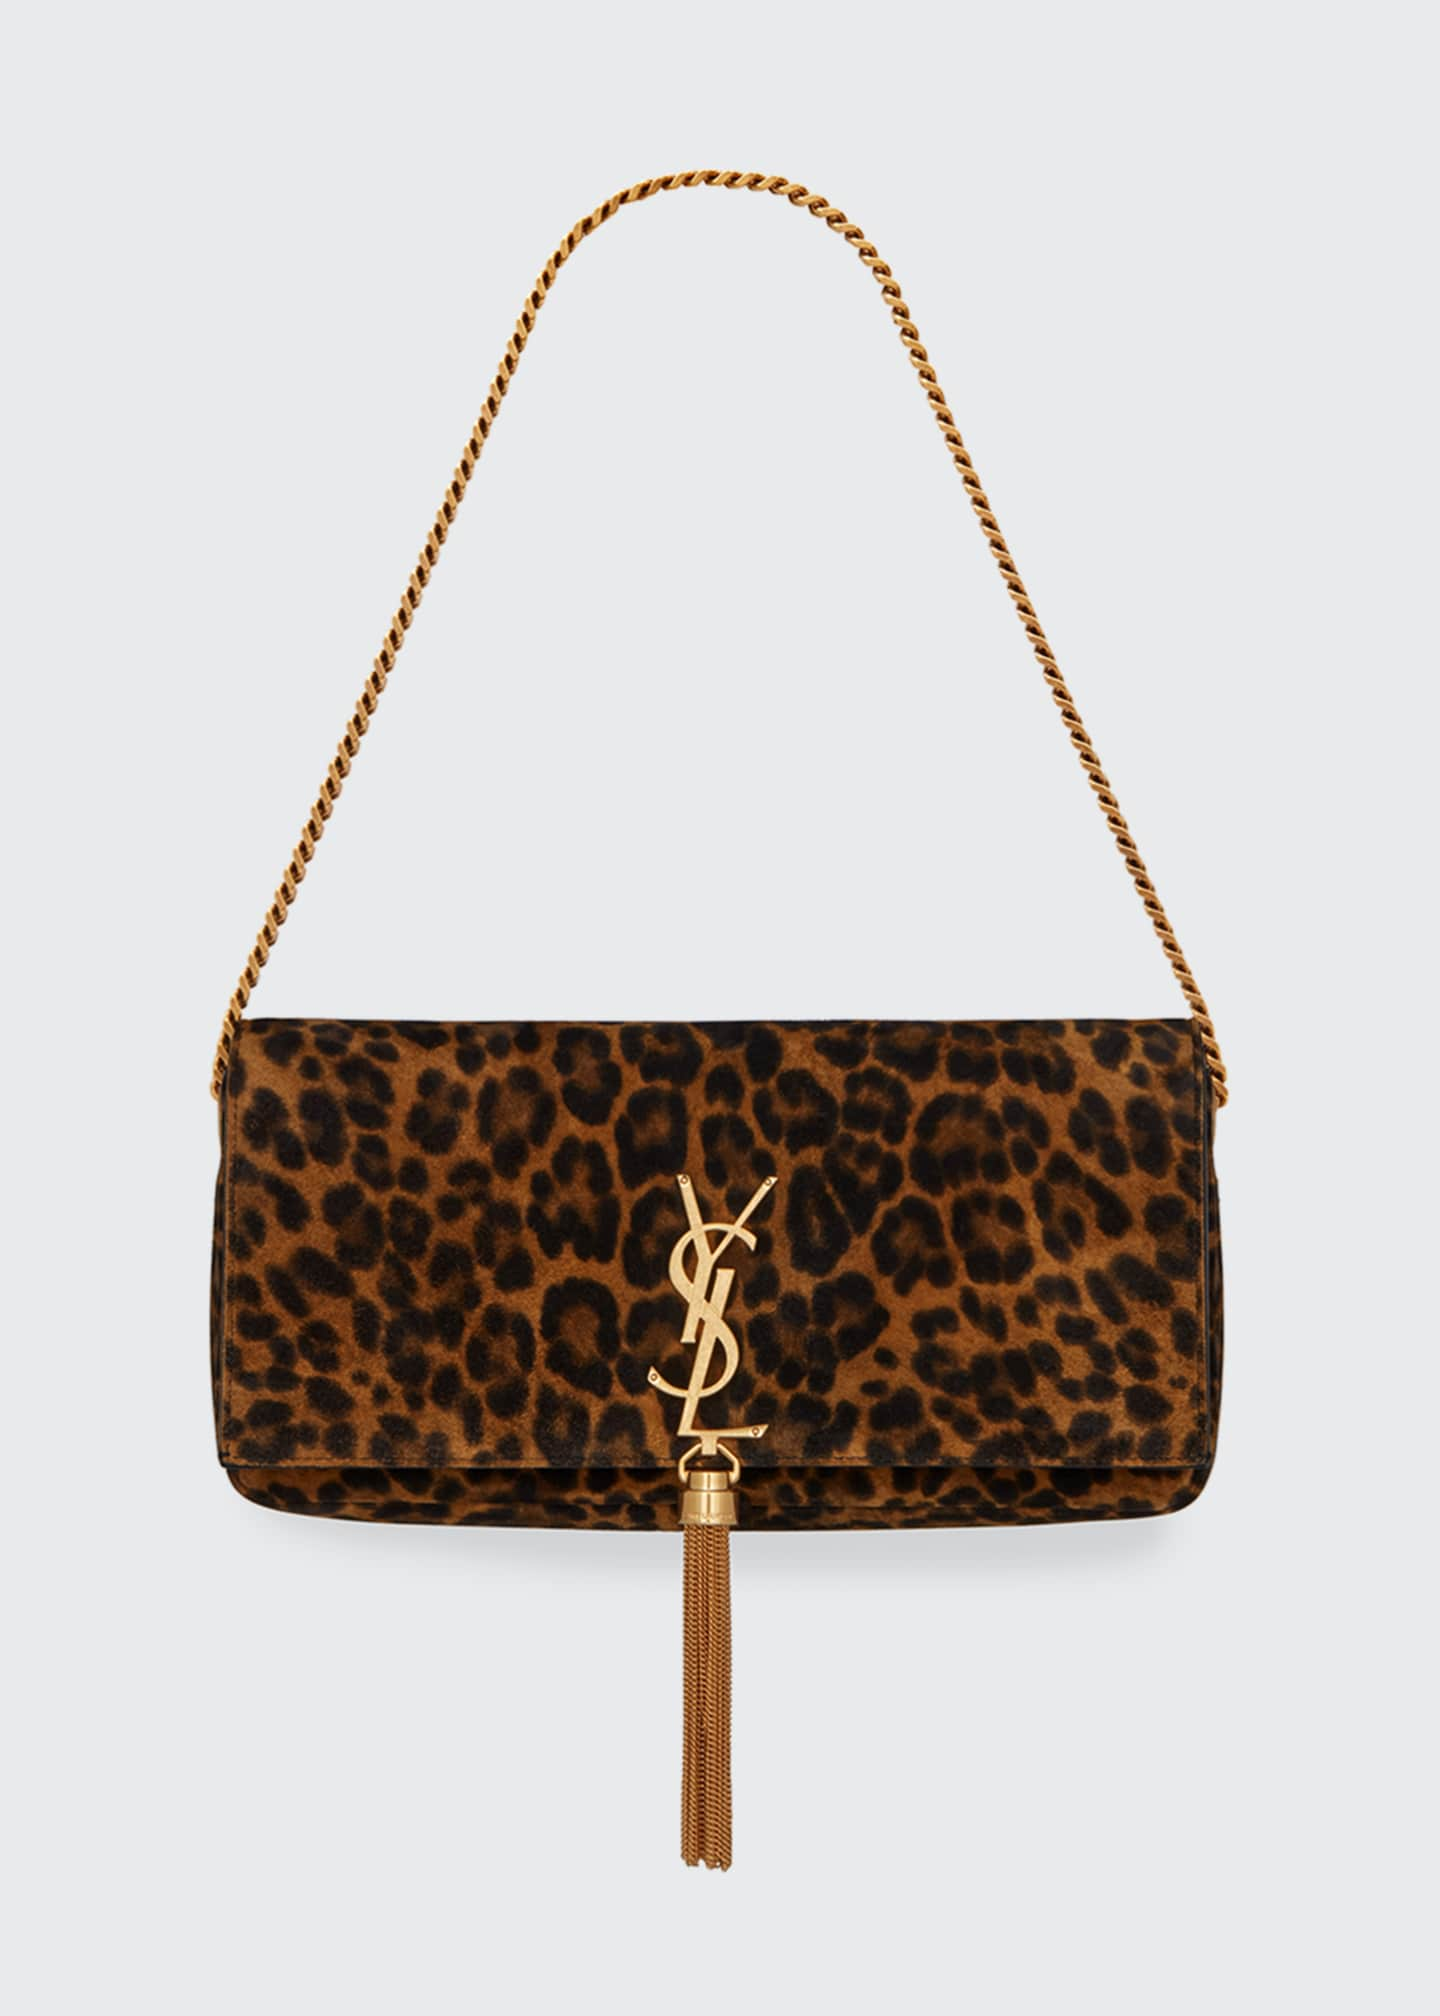 Saint Laurent Kate Baguette YSL Monogram Leopard Shoulder